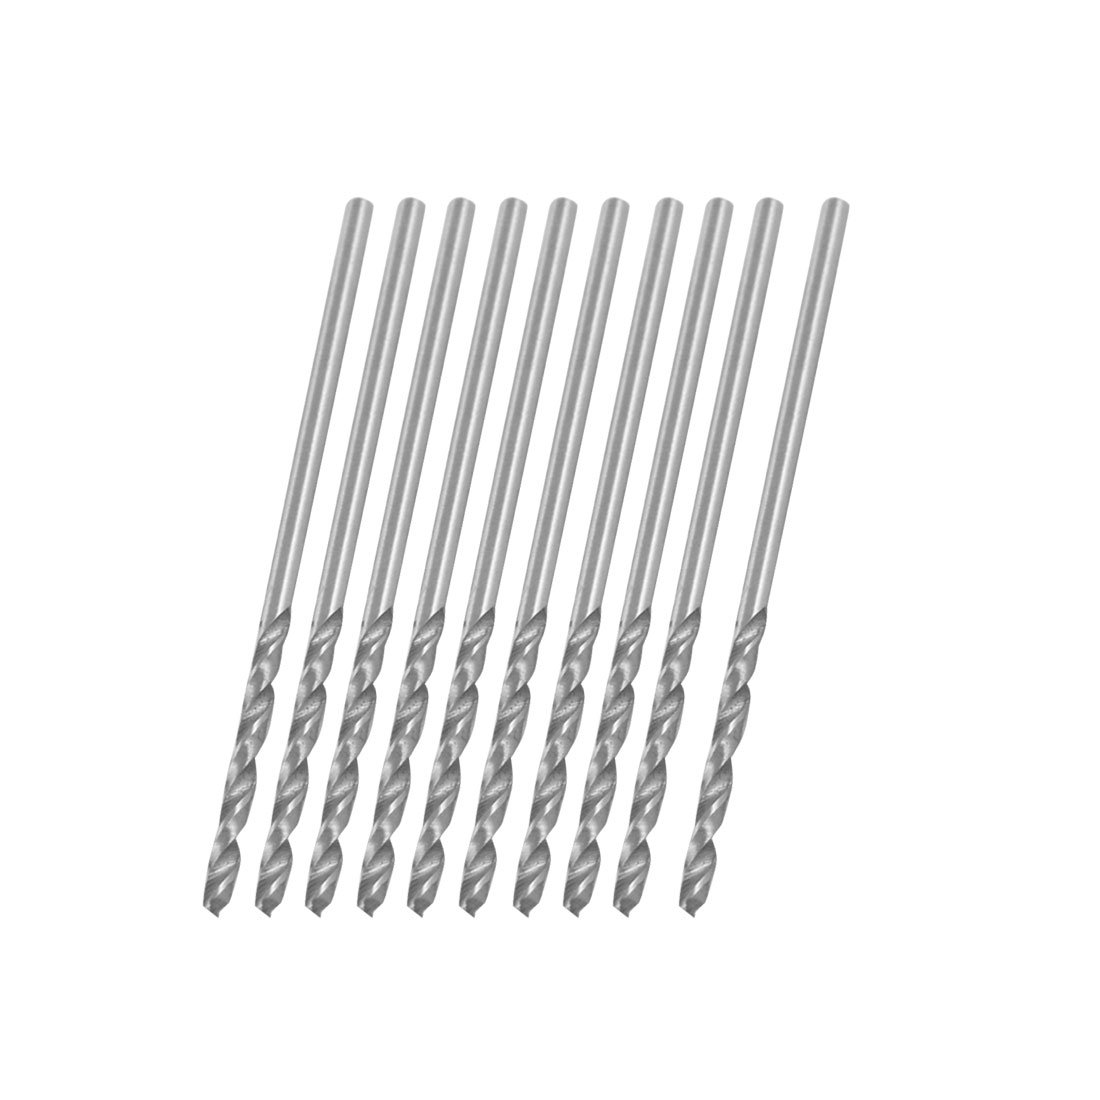 10 Pcs 1.25mm Straight Shank Spiral Twist Drill Bit